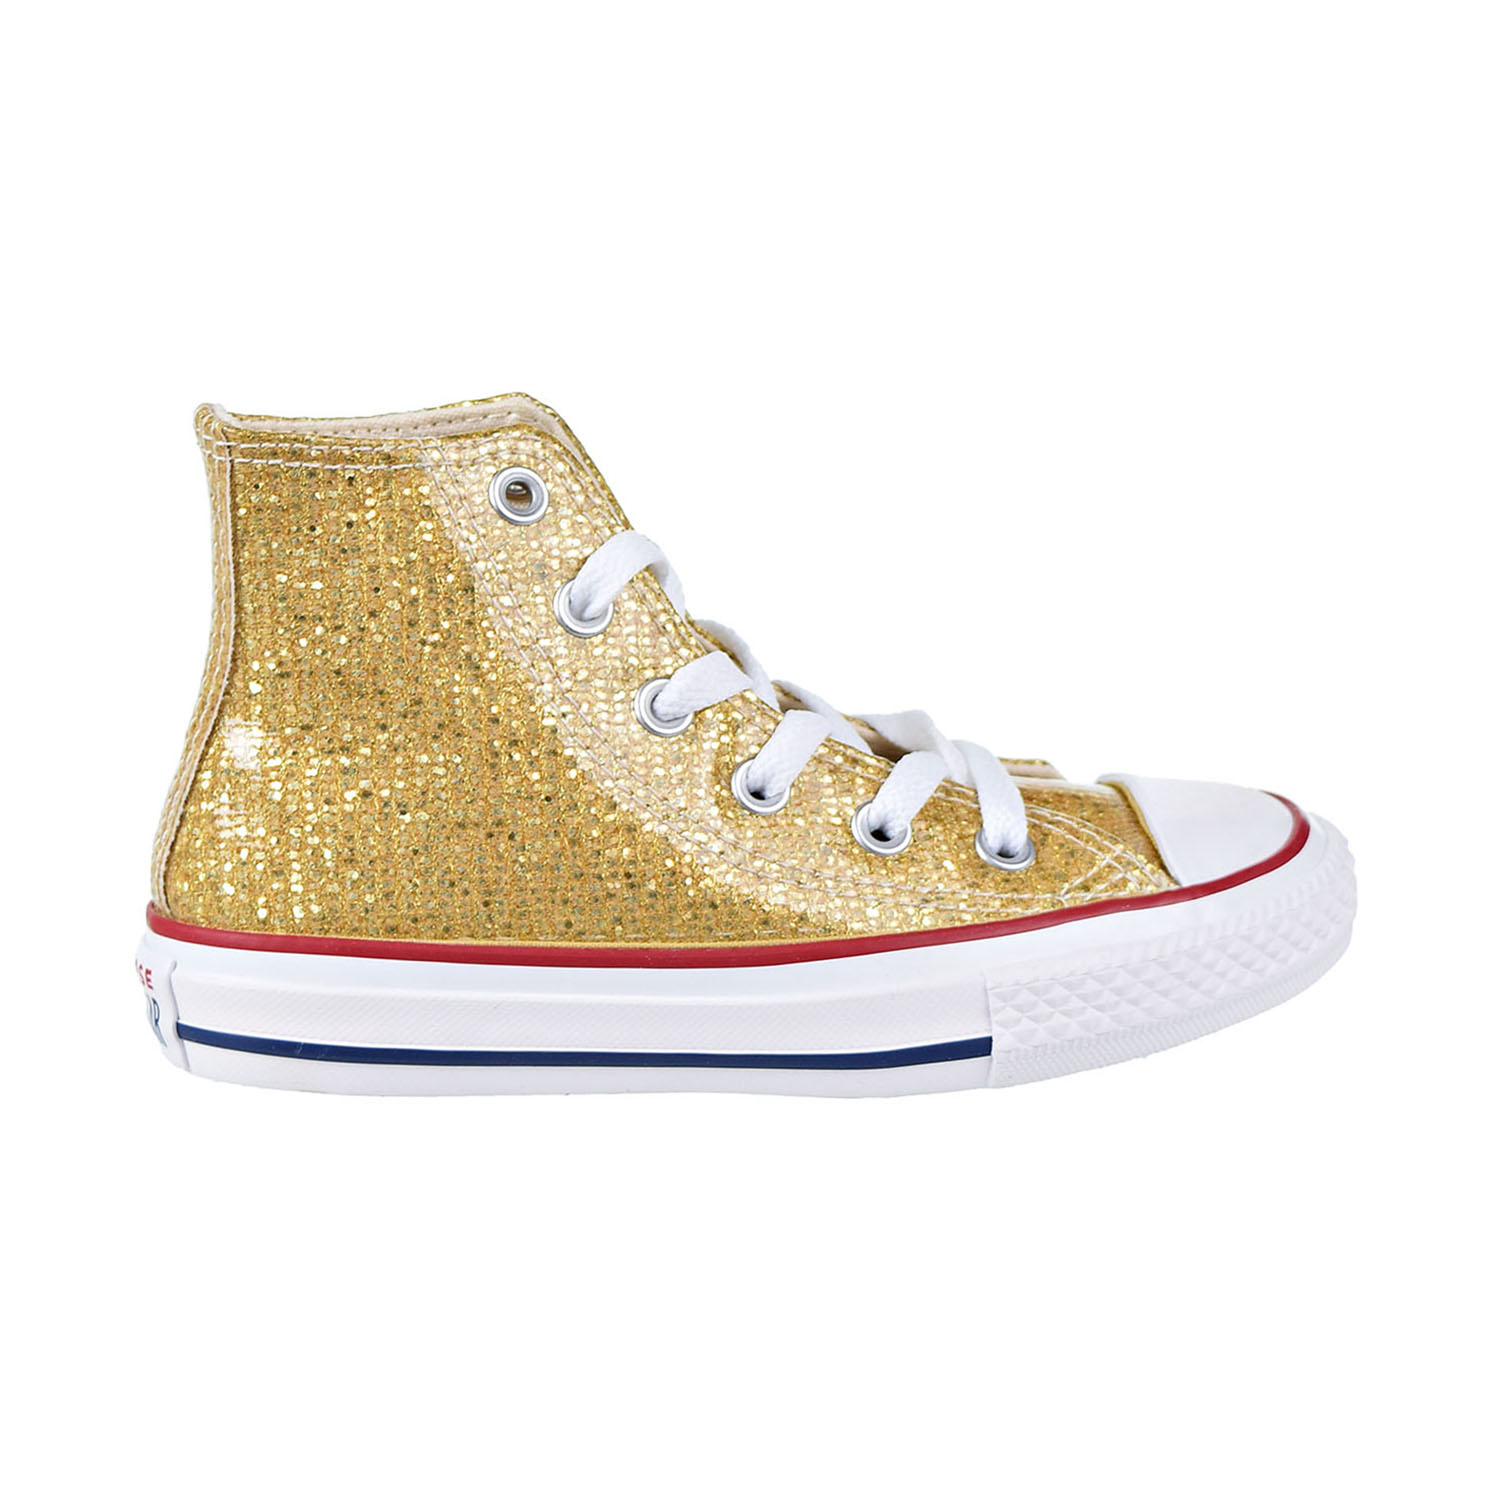 b4896b09ce29 Converse Chuck Taylor All Star Hi Kids  Shoes Gold Enamel Red White 663625c